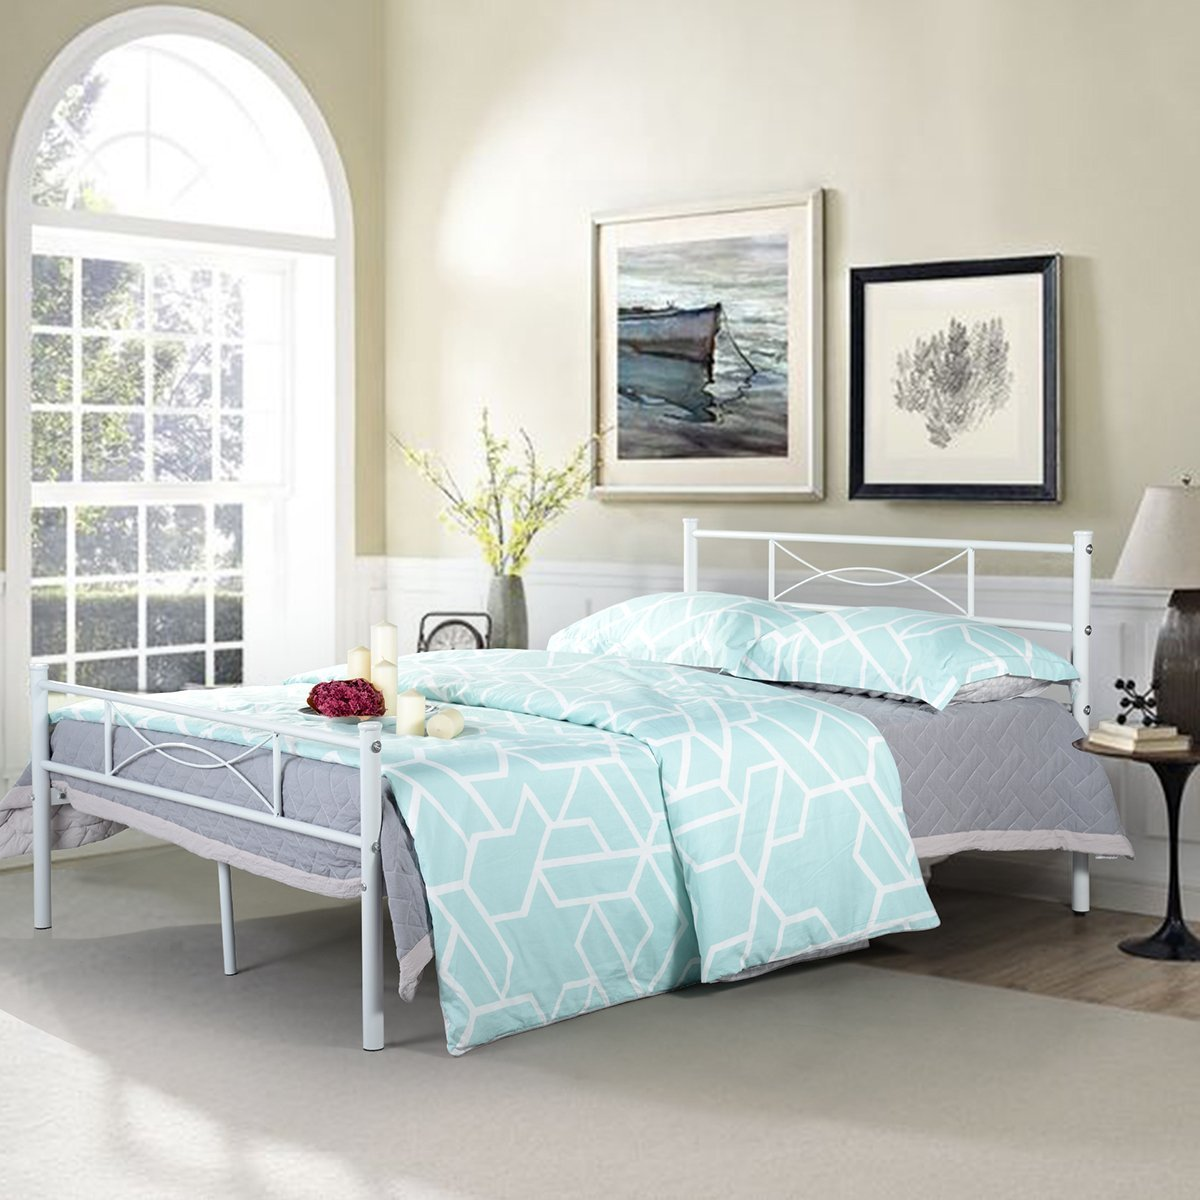 Cheap White Double Metal Bed Frame, find White Double Metal Bed ...